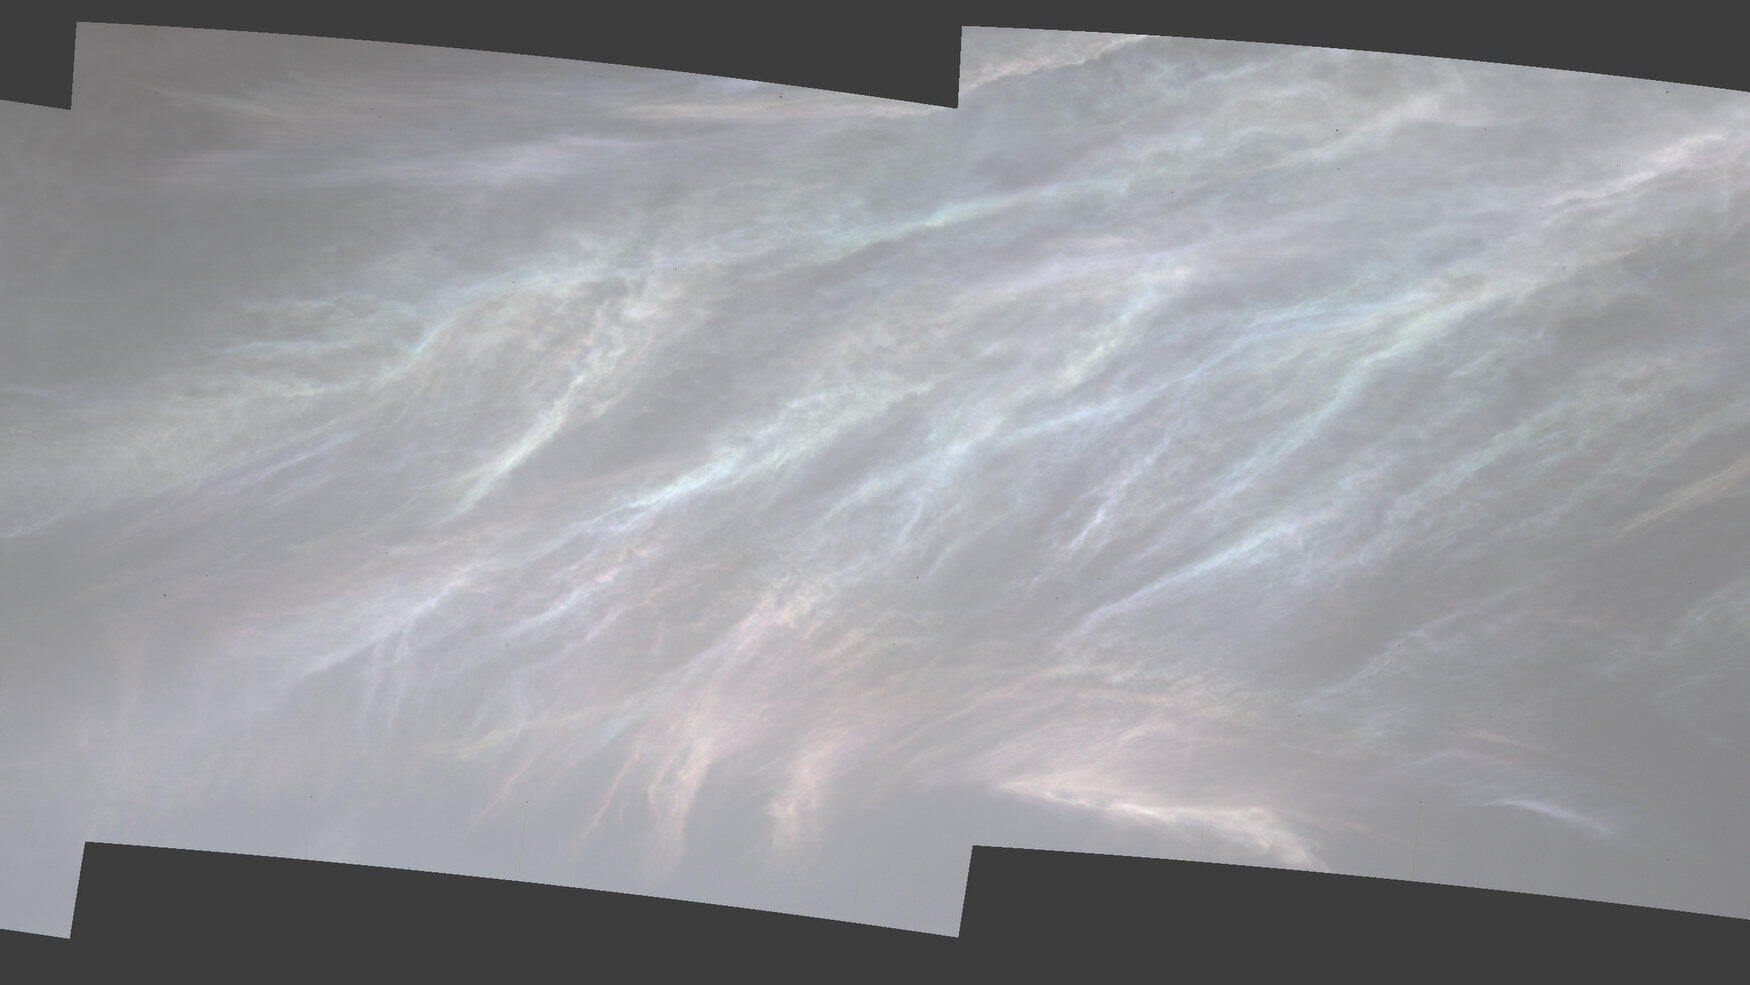 NASA Mars rover spots iridescent 'mother of pearl' clouds – CNET